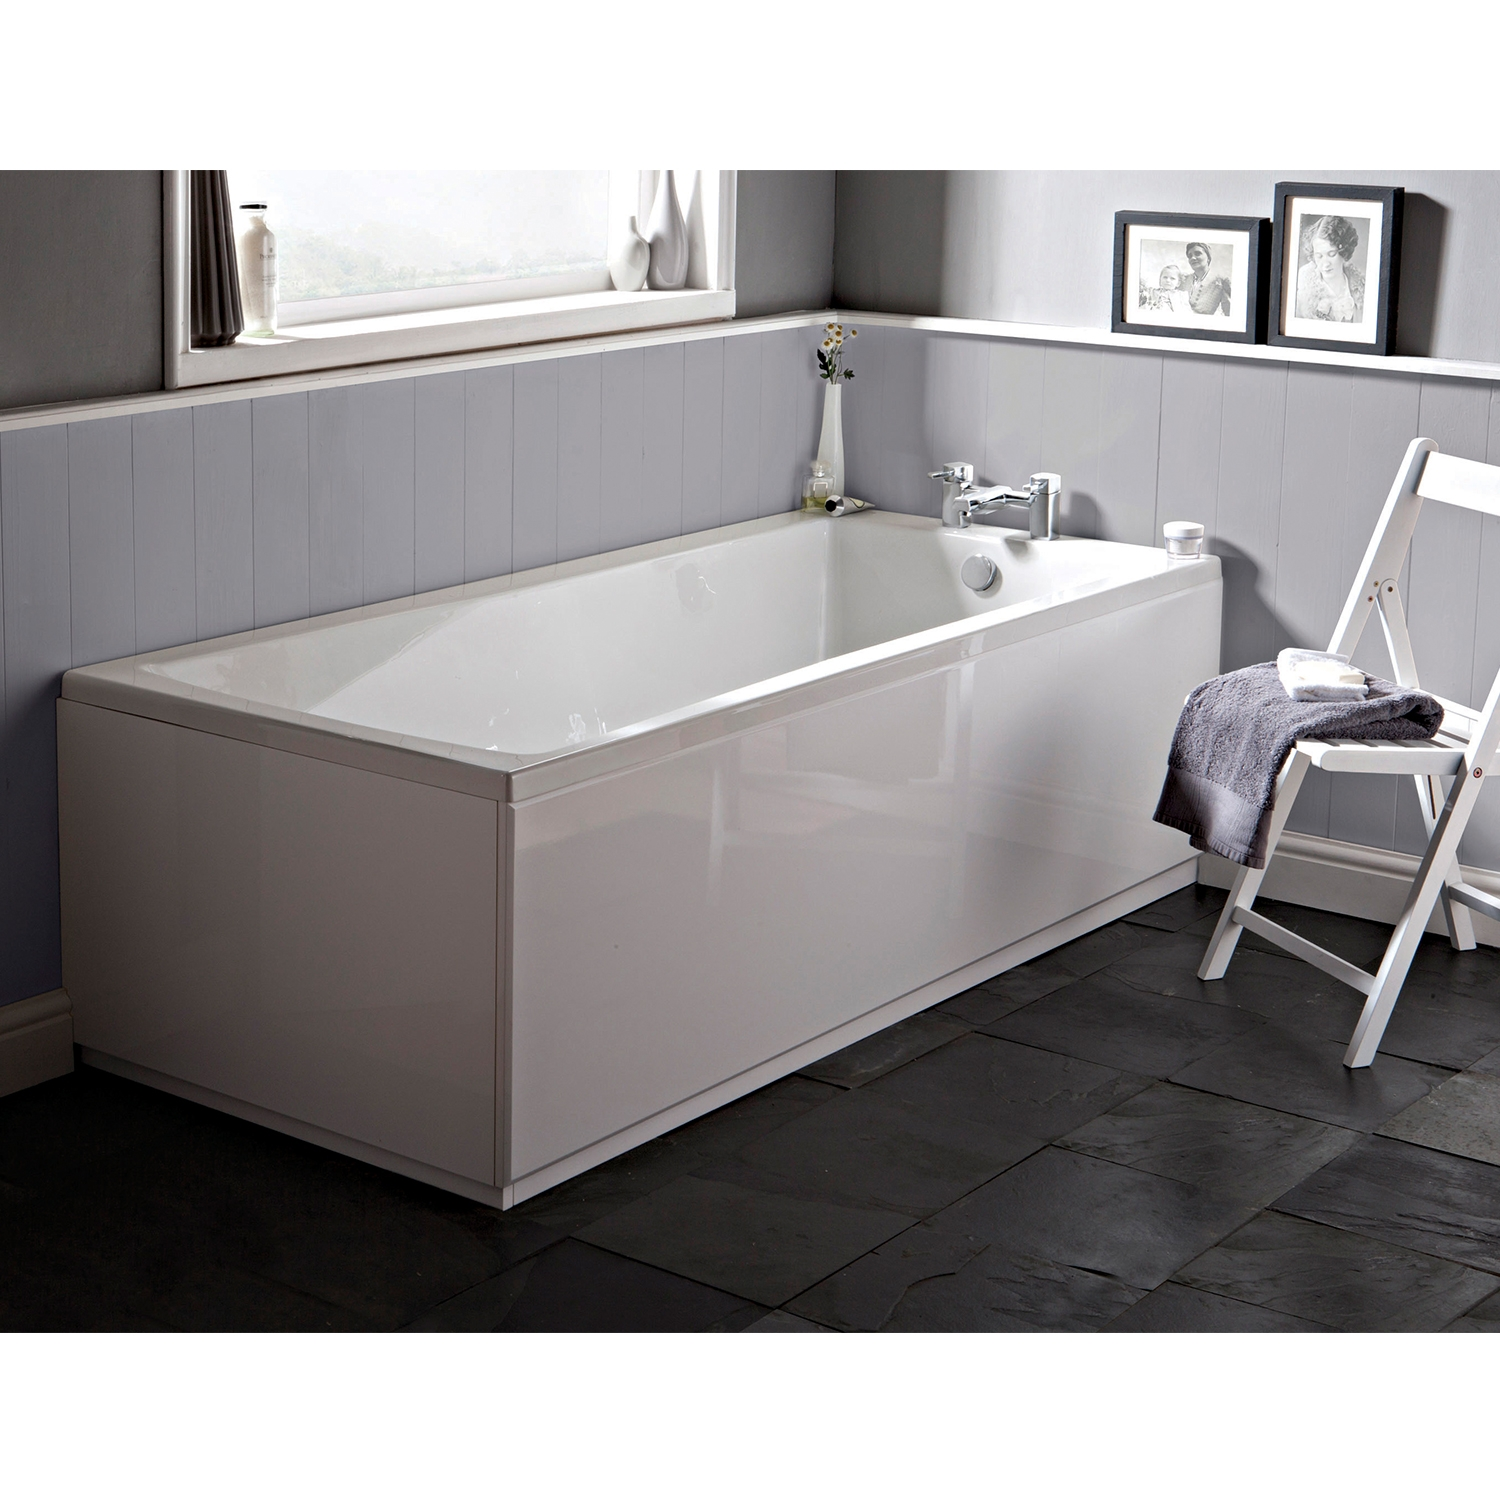 Hudson Reed Linton Single Ended Rectangular Bath 1500mm x 700mm - Eternalite